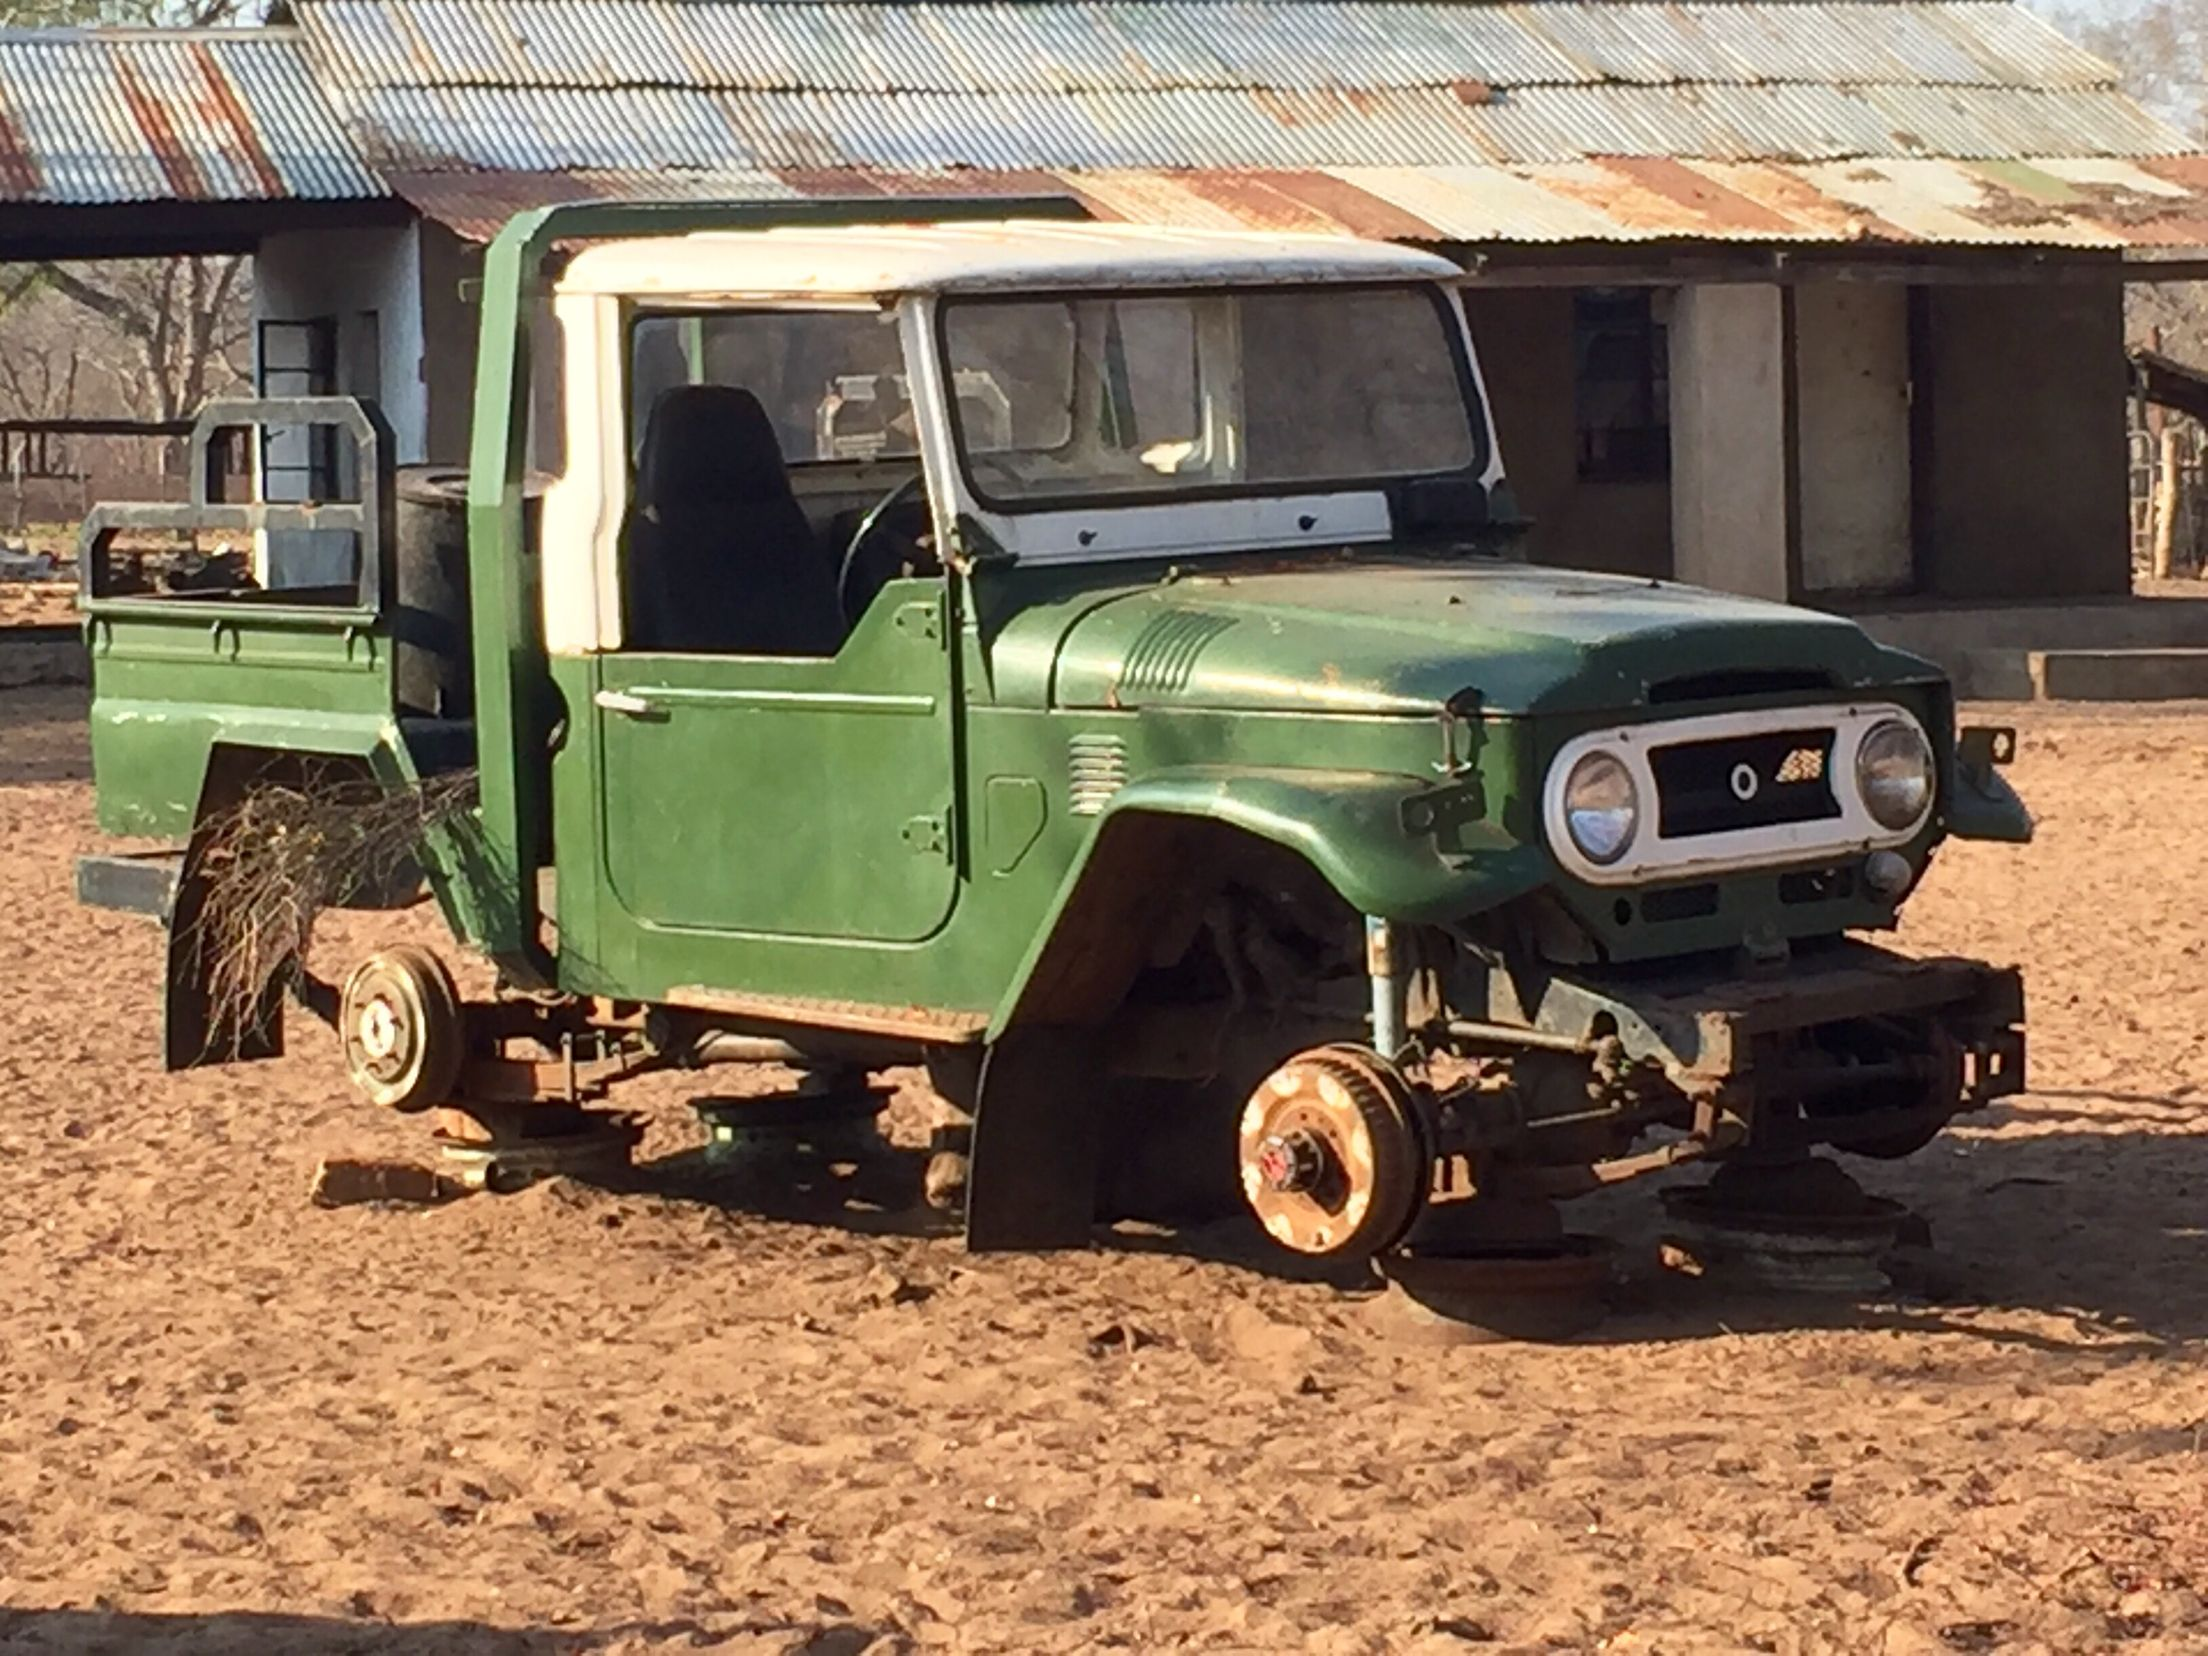 Old Cruiser Found In Zimbabwe Land Cruiser Toyota Land Cruiser